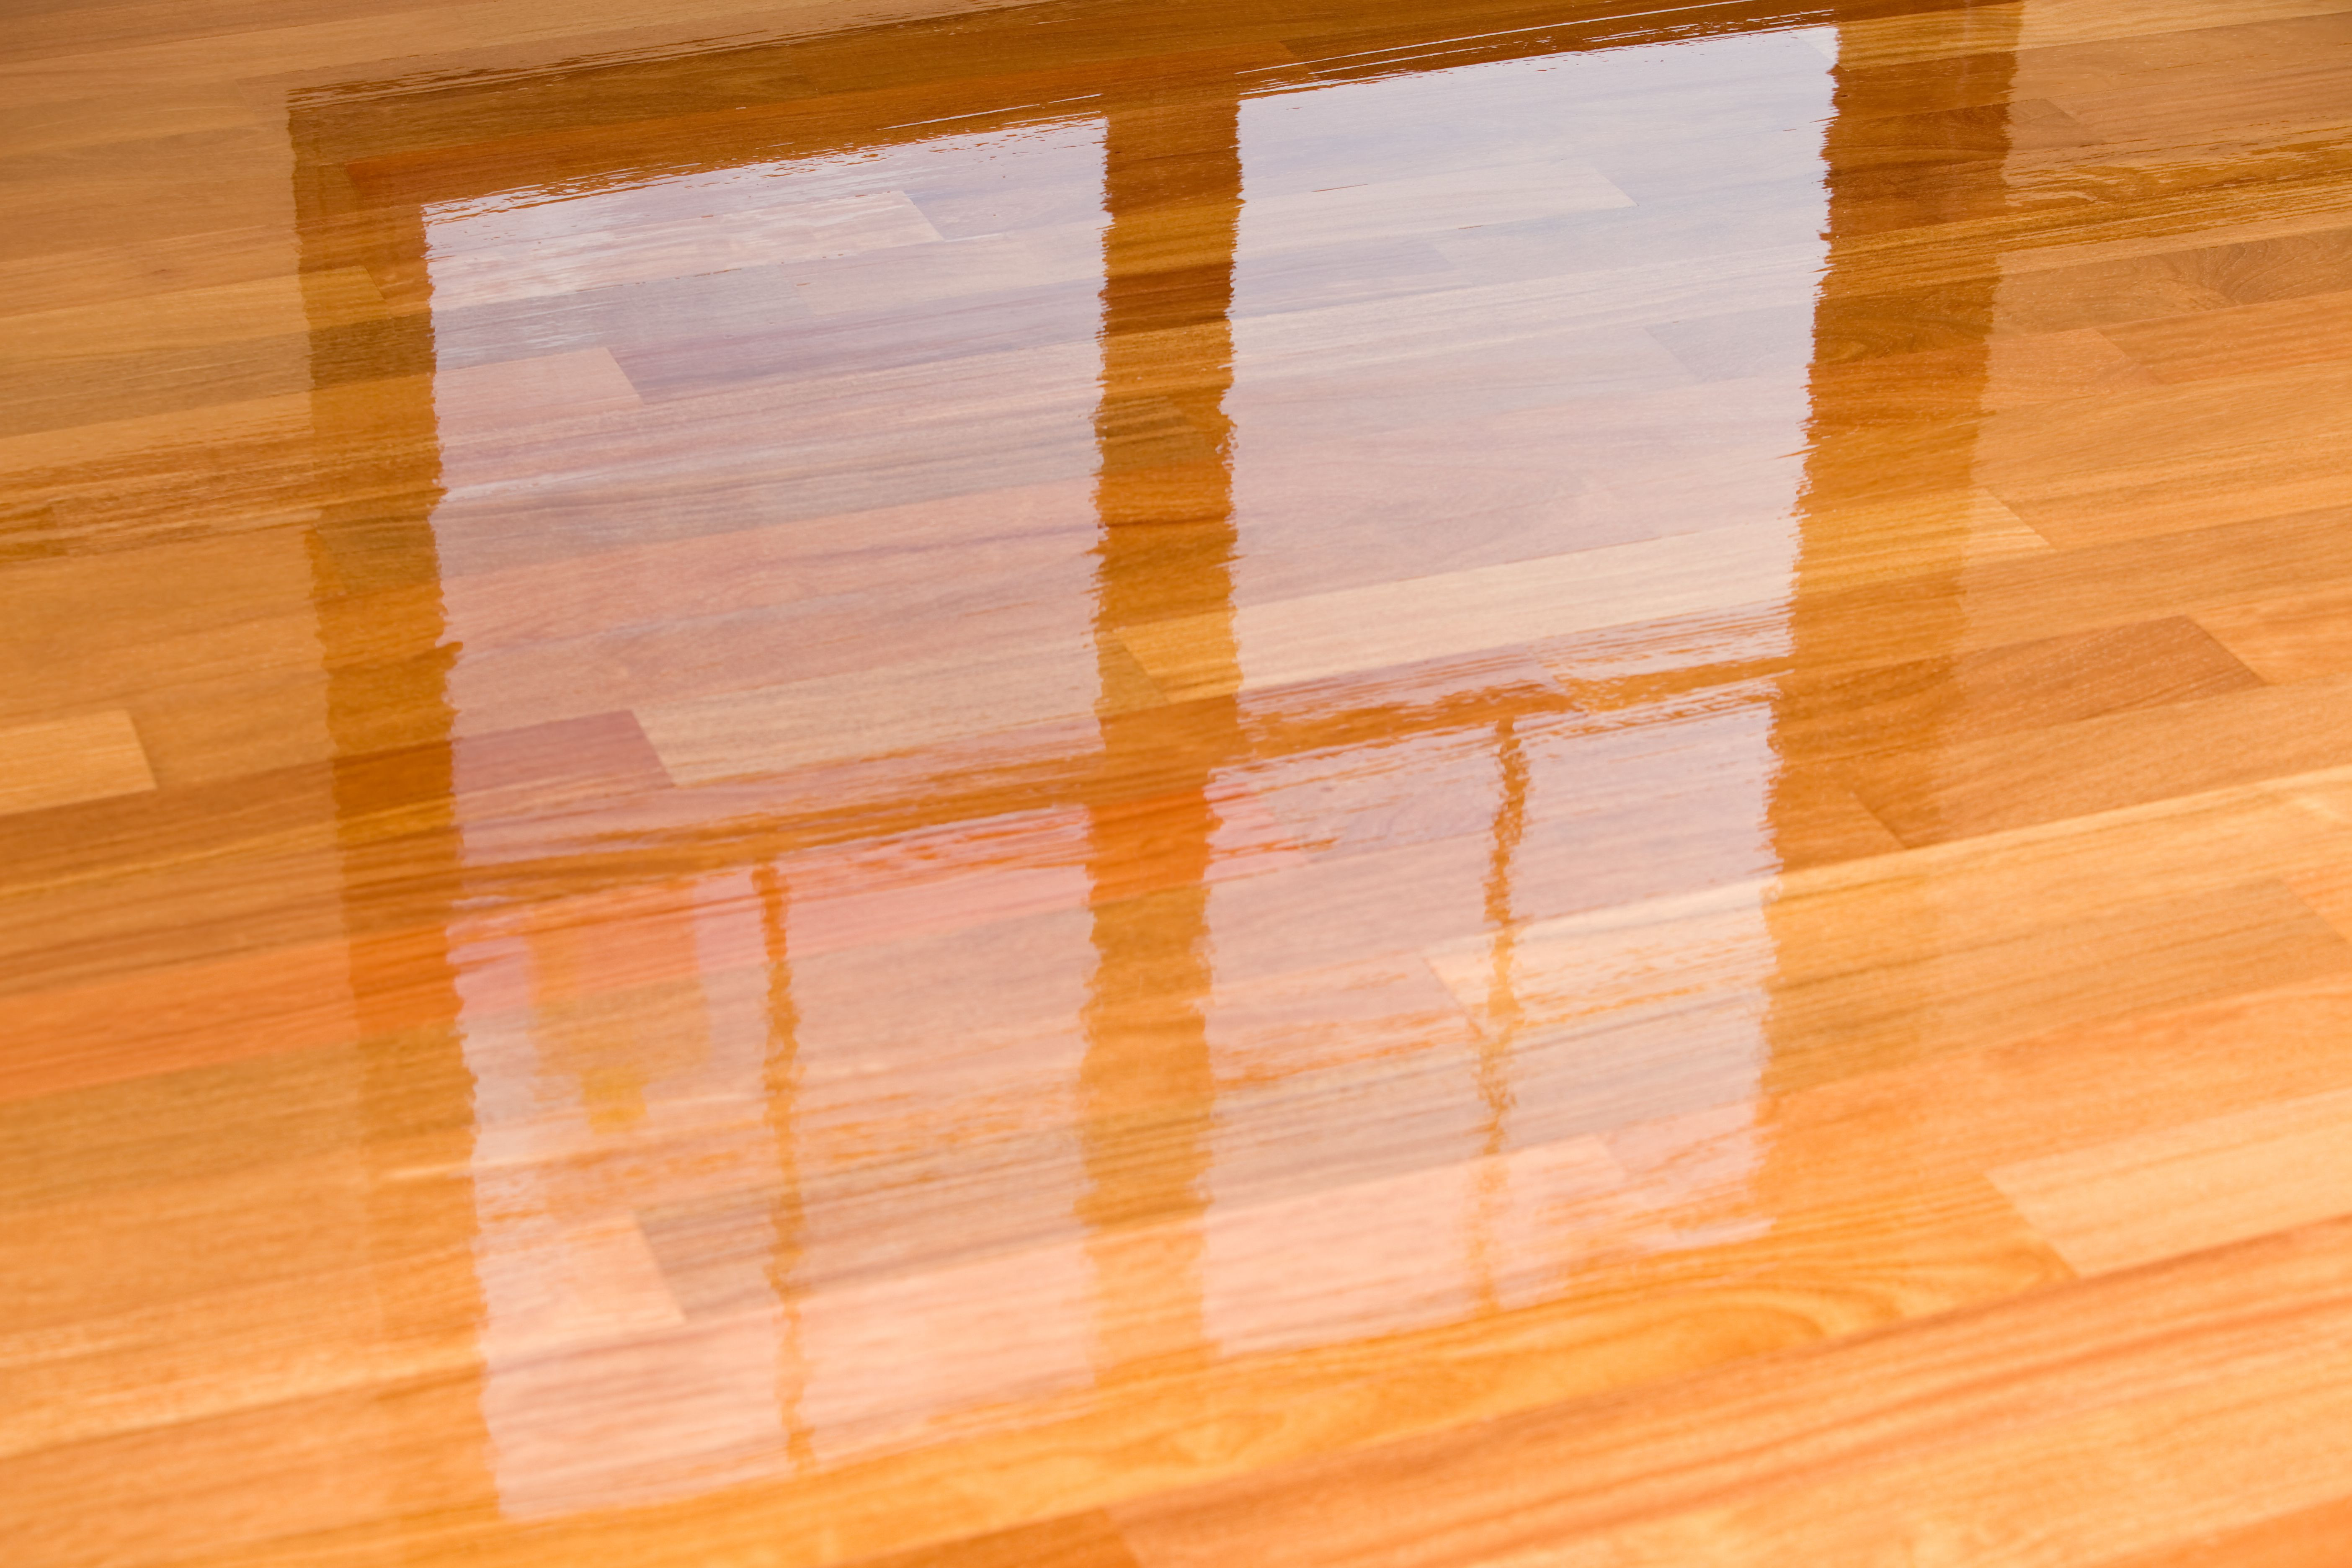 shaw 3 4 hardwood flooring of guide to laminate flooring water and damage repair for wet polyurethane on new hardwood floor with window reflection 183846705 582e34da3df78c6f6a403968